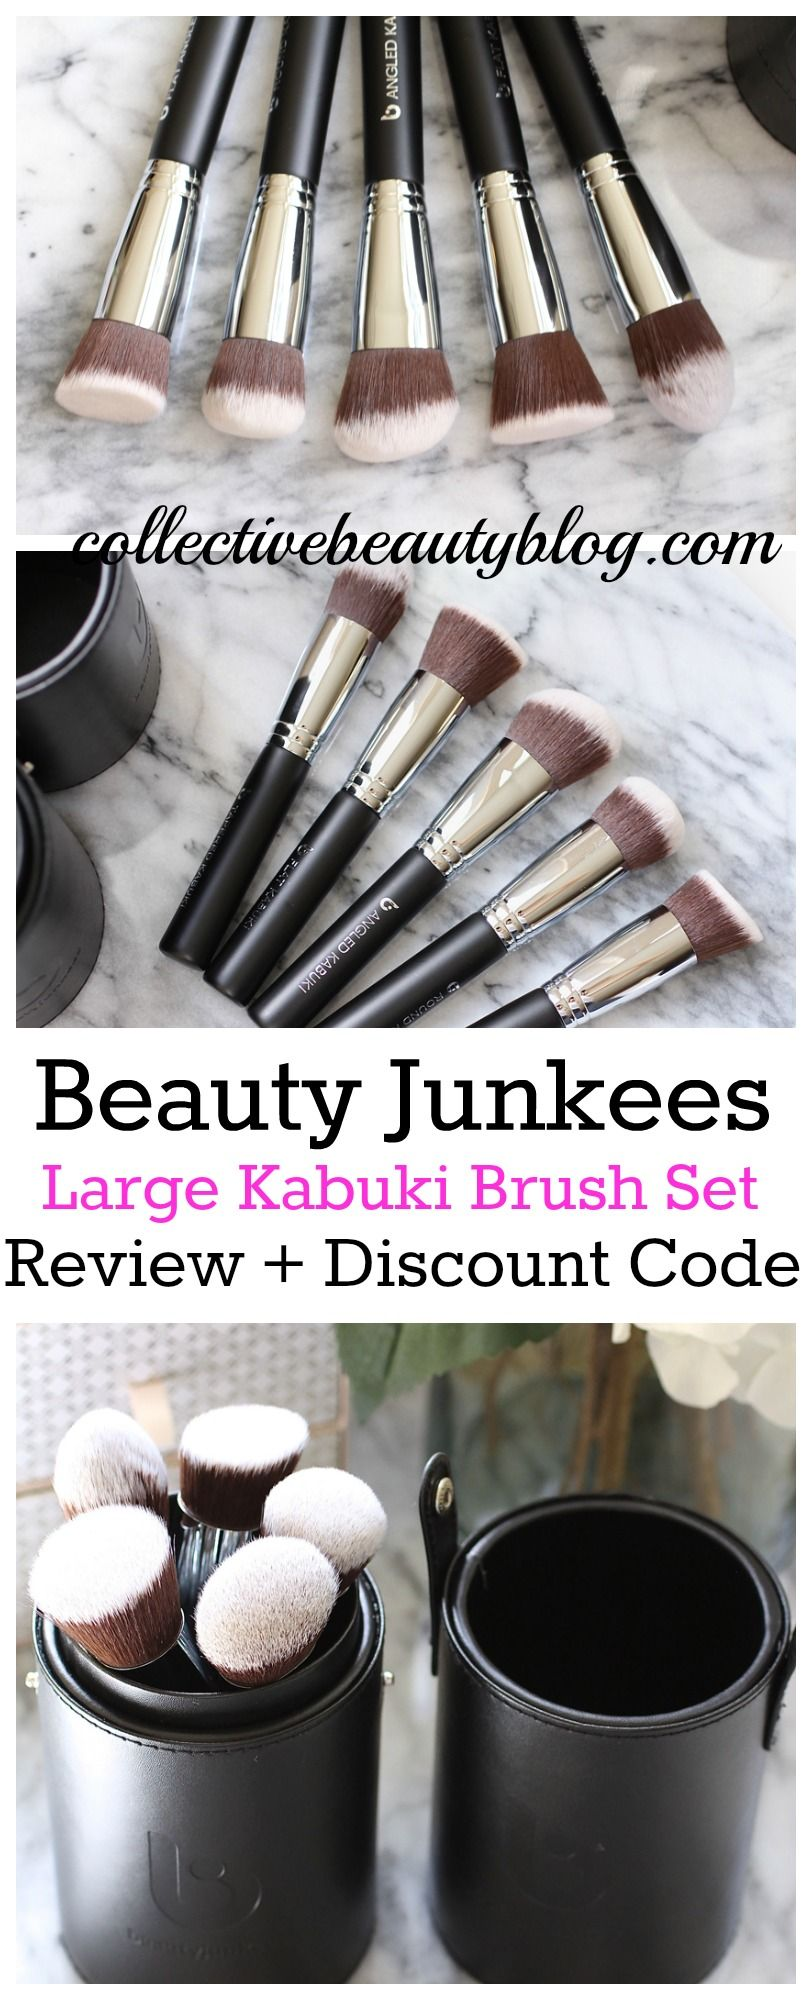 Beauty Junkees Large Kabuki Set Review + Discount Offer